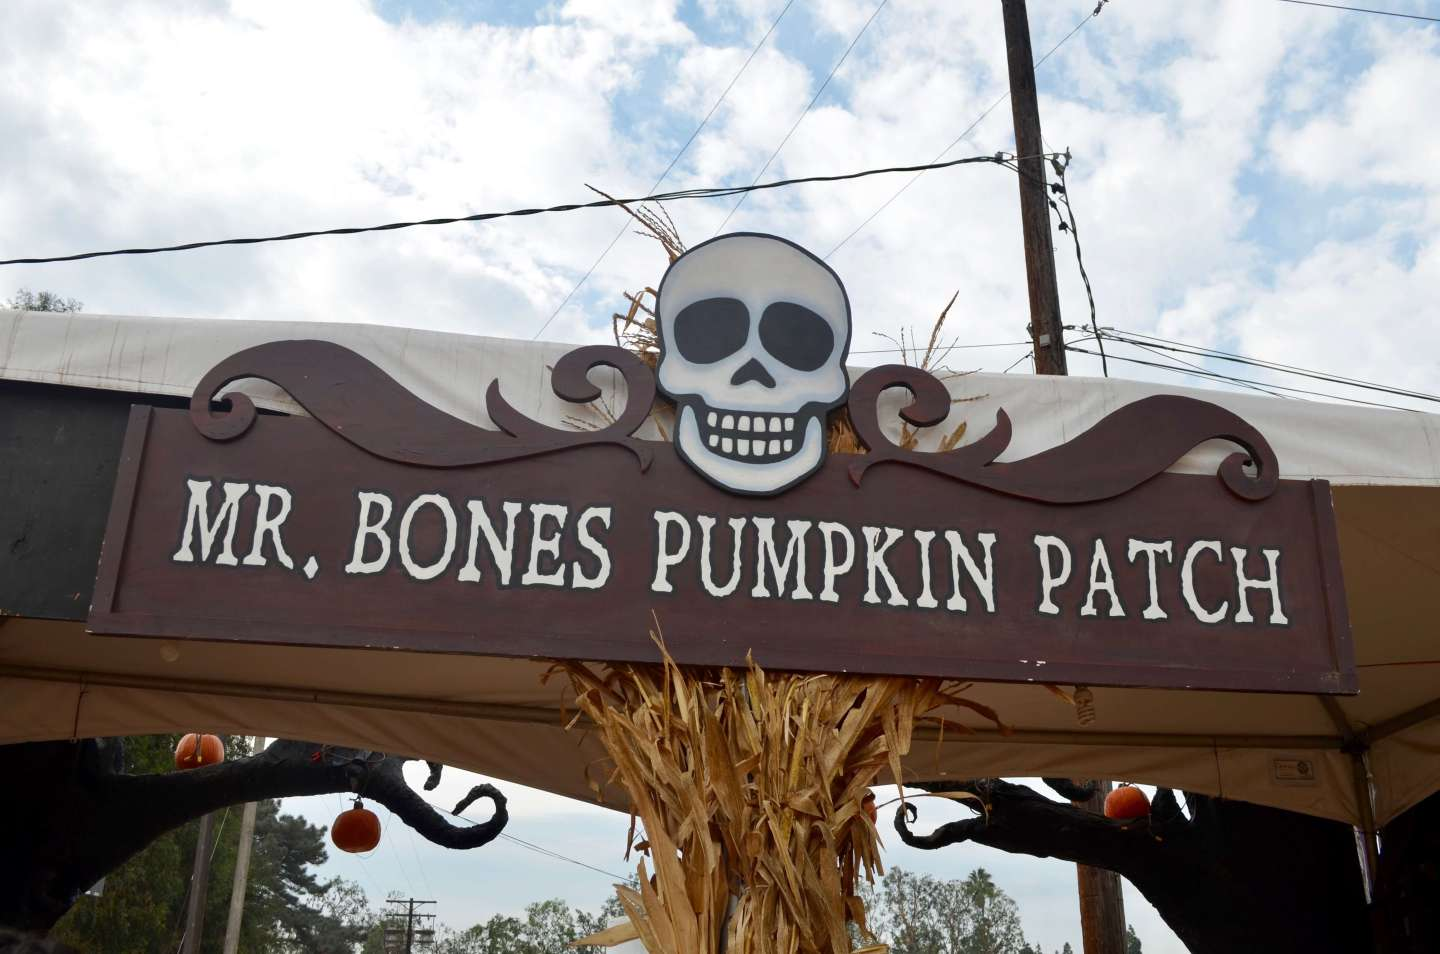 Mr. Bones Pumpkin Patch